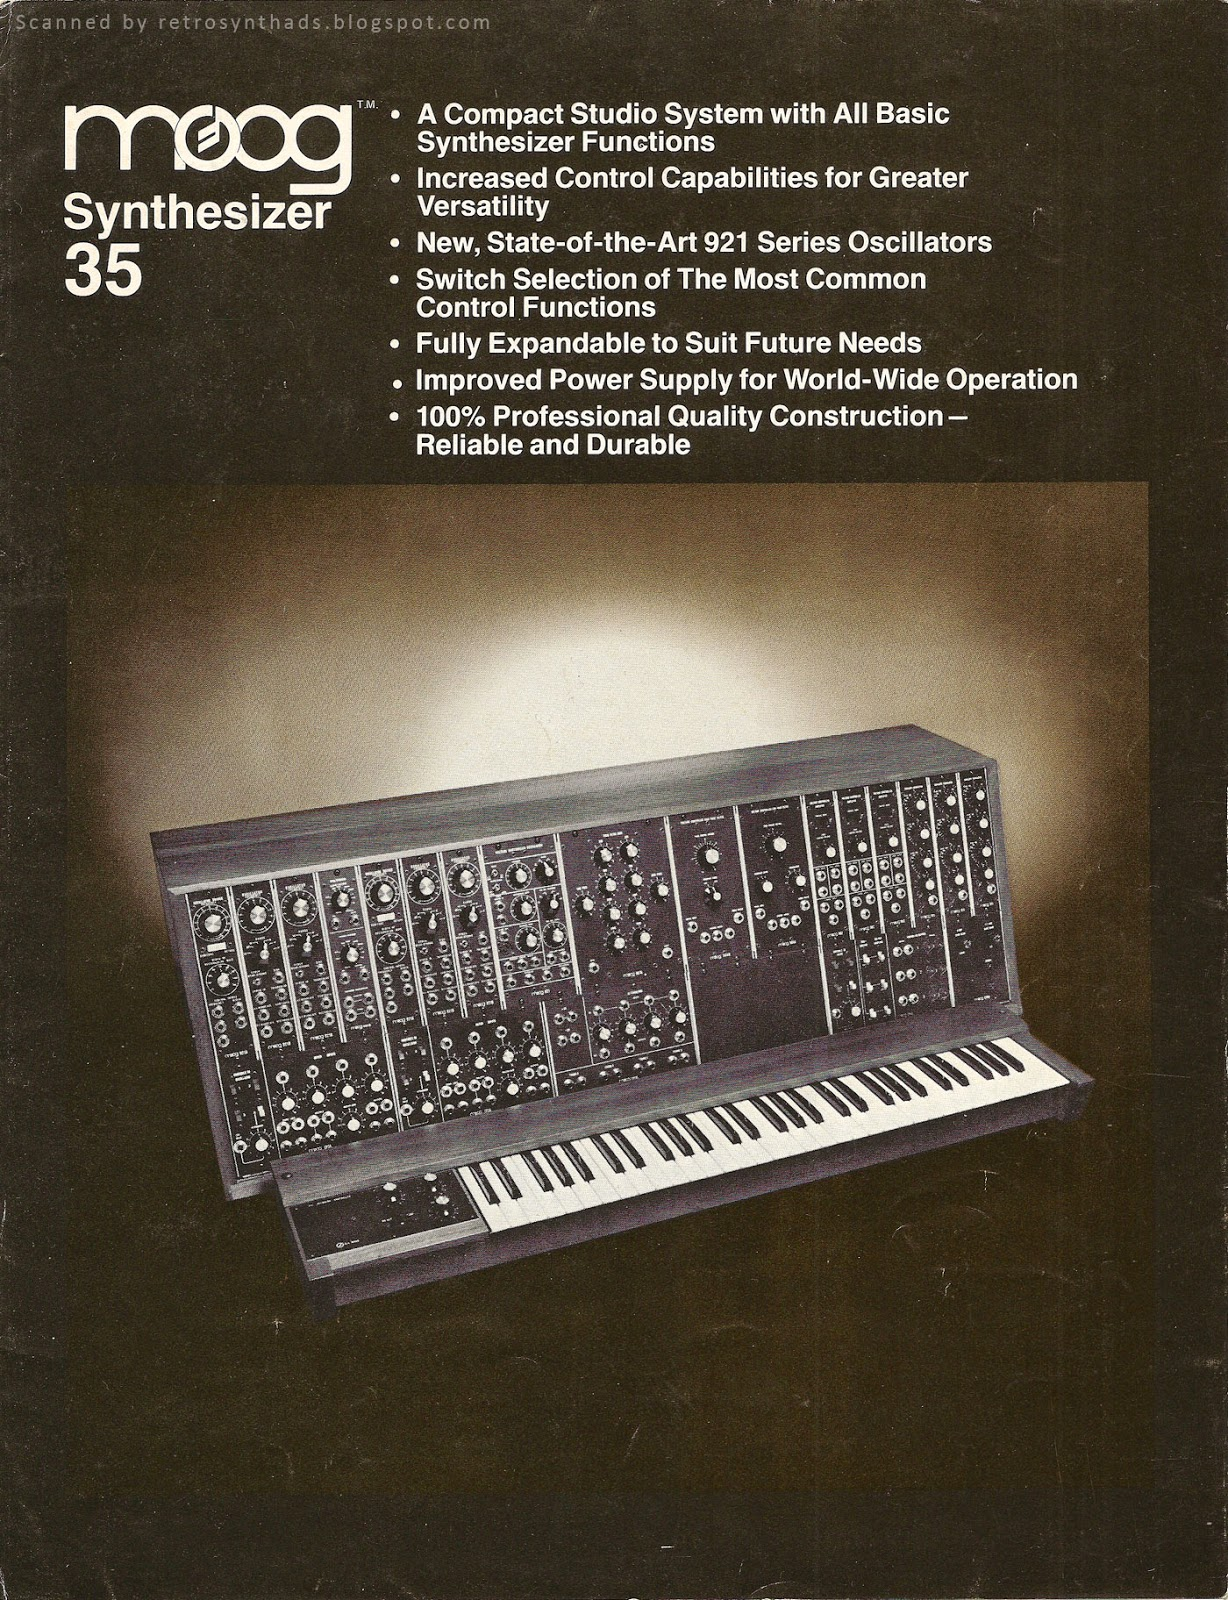 http://retrosynthads.blogspot.ca/2014/04/moog-synthesizer-35-modular-system-six.html